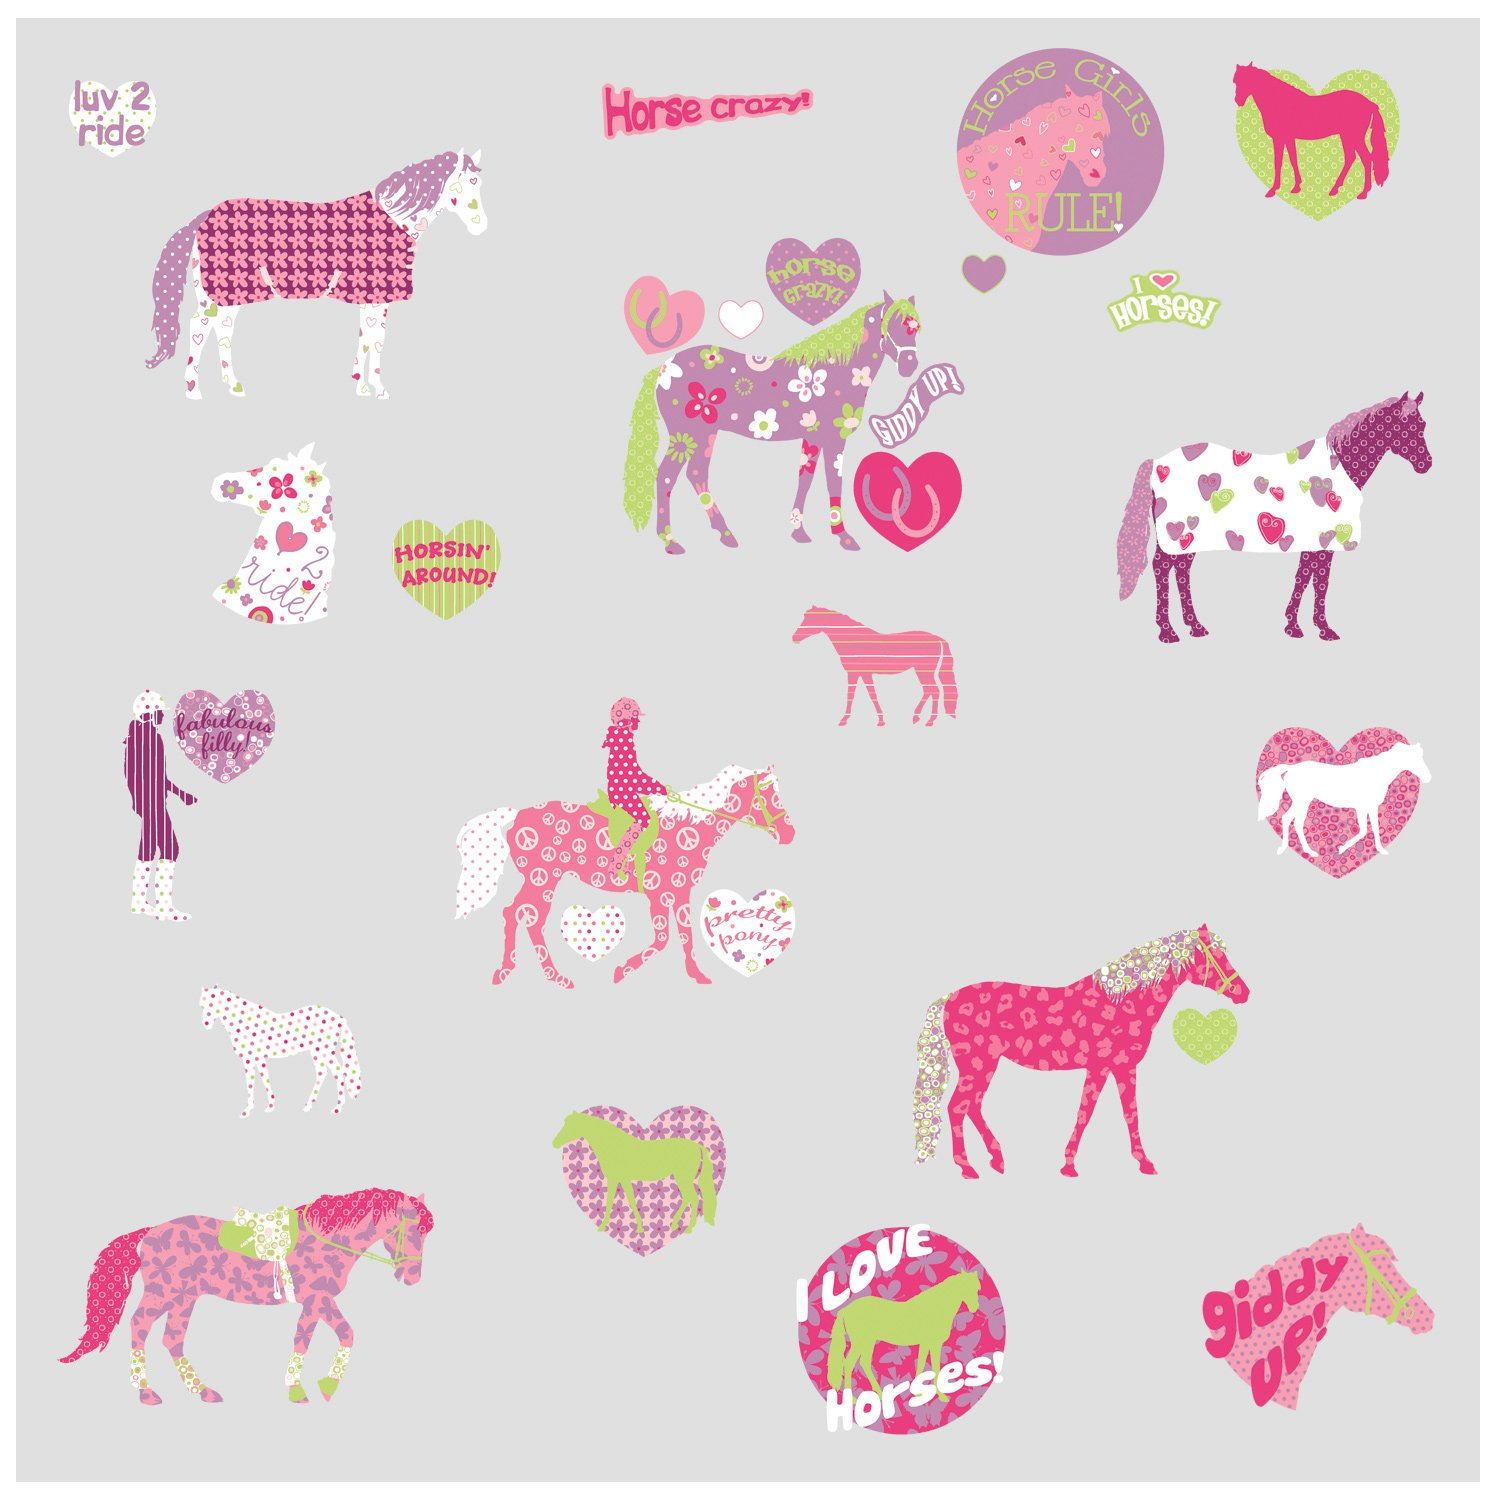 Captivating RoomMates Repositionable Childrens Wall Stickers Horse Crazy: Amazon.co.uk:  Kitchen U0026 Home Part 14